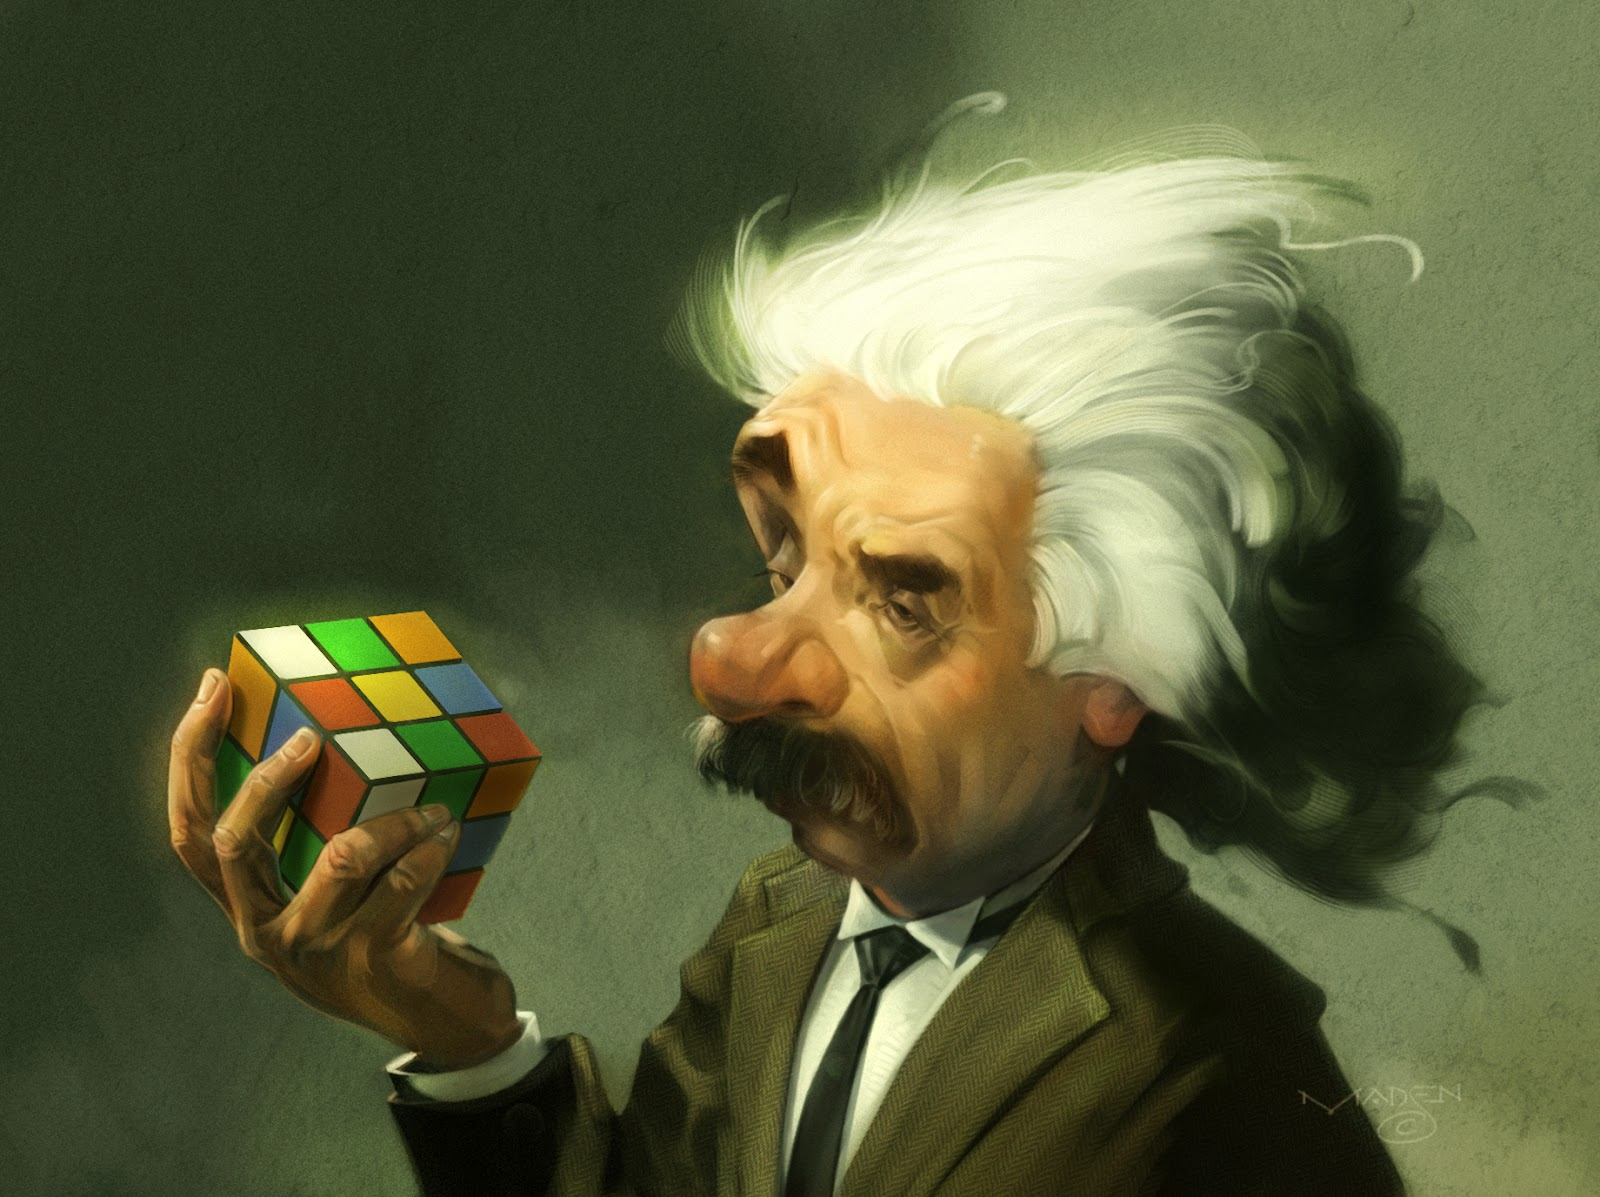 5 Puzzles that will make you go oh Shucks! : Think different, stay Happy